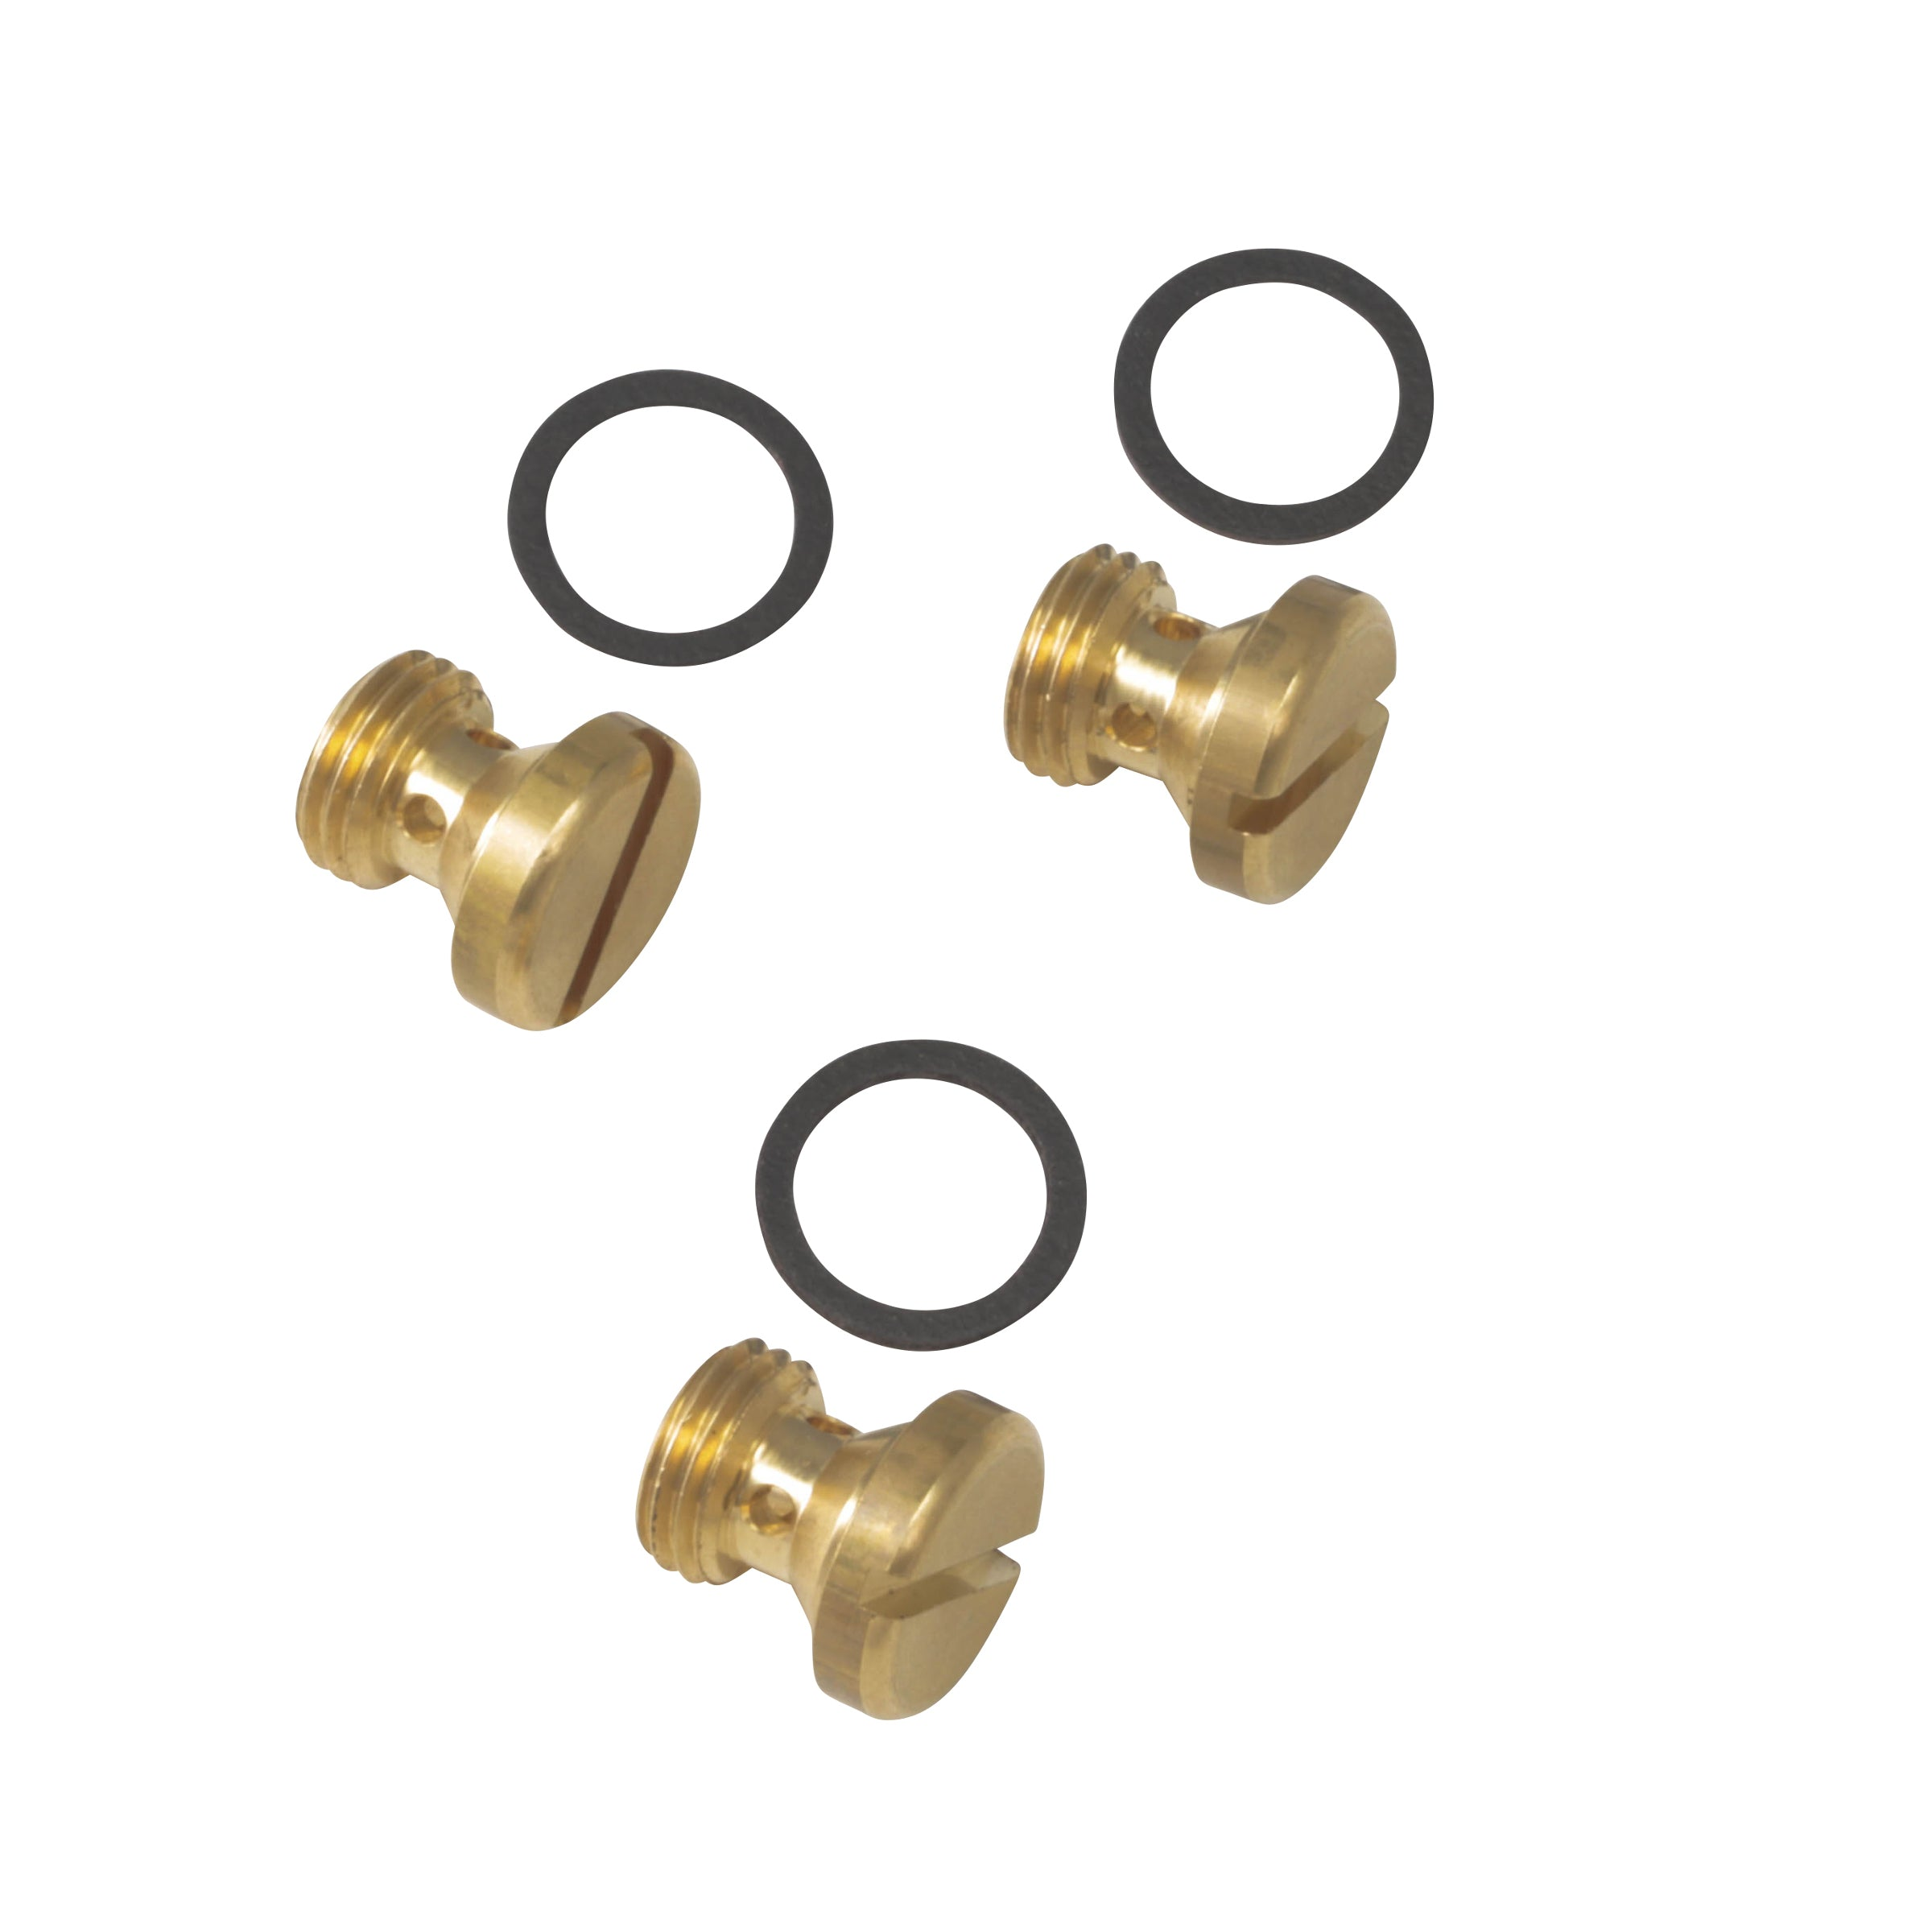 Genuine Stromberg 97 Carburetor Bowl Plug Kit